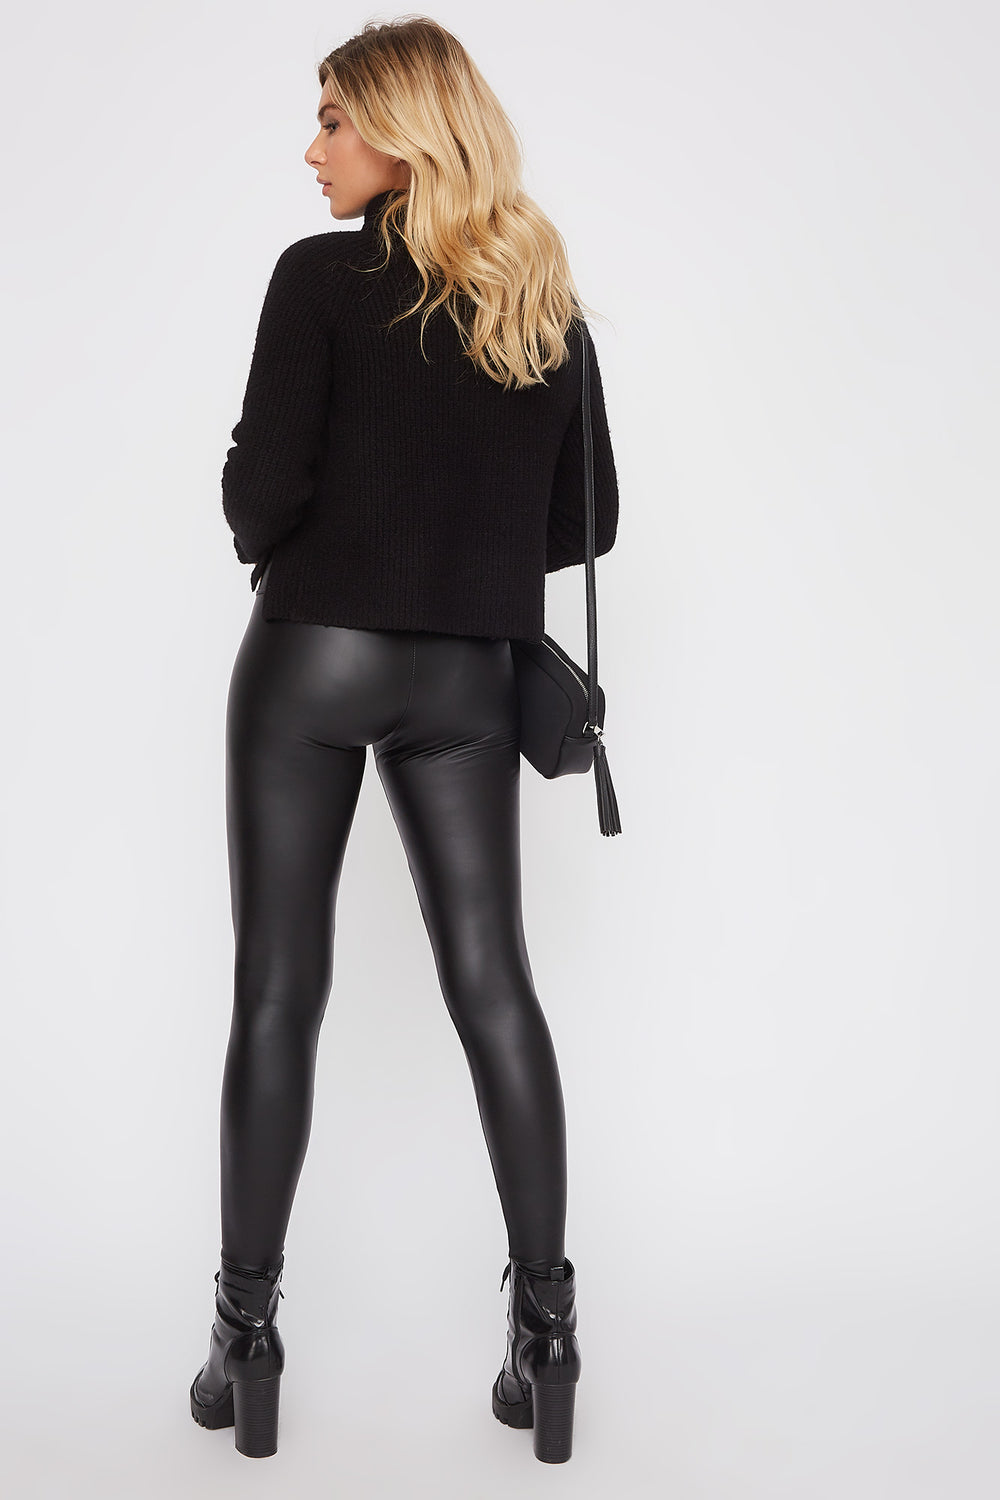 Matte Faux-Leather Legging Black